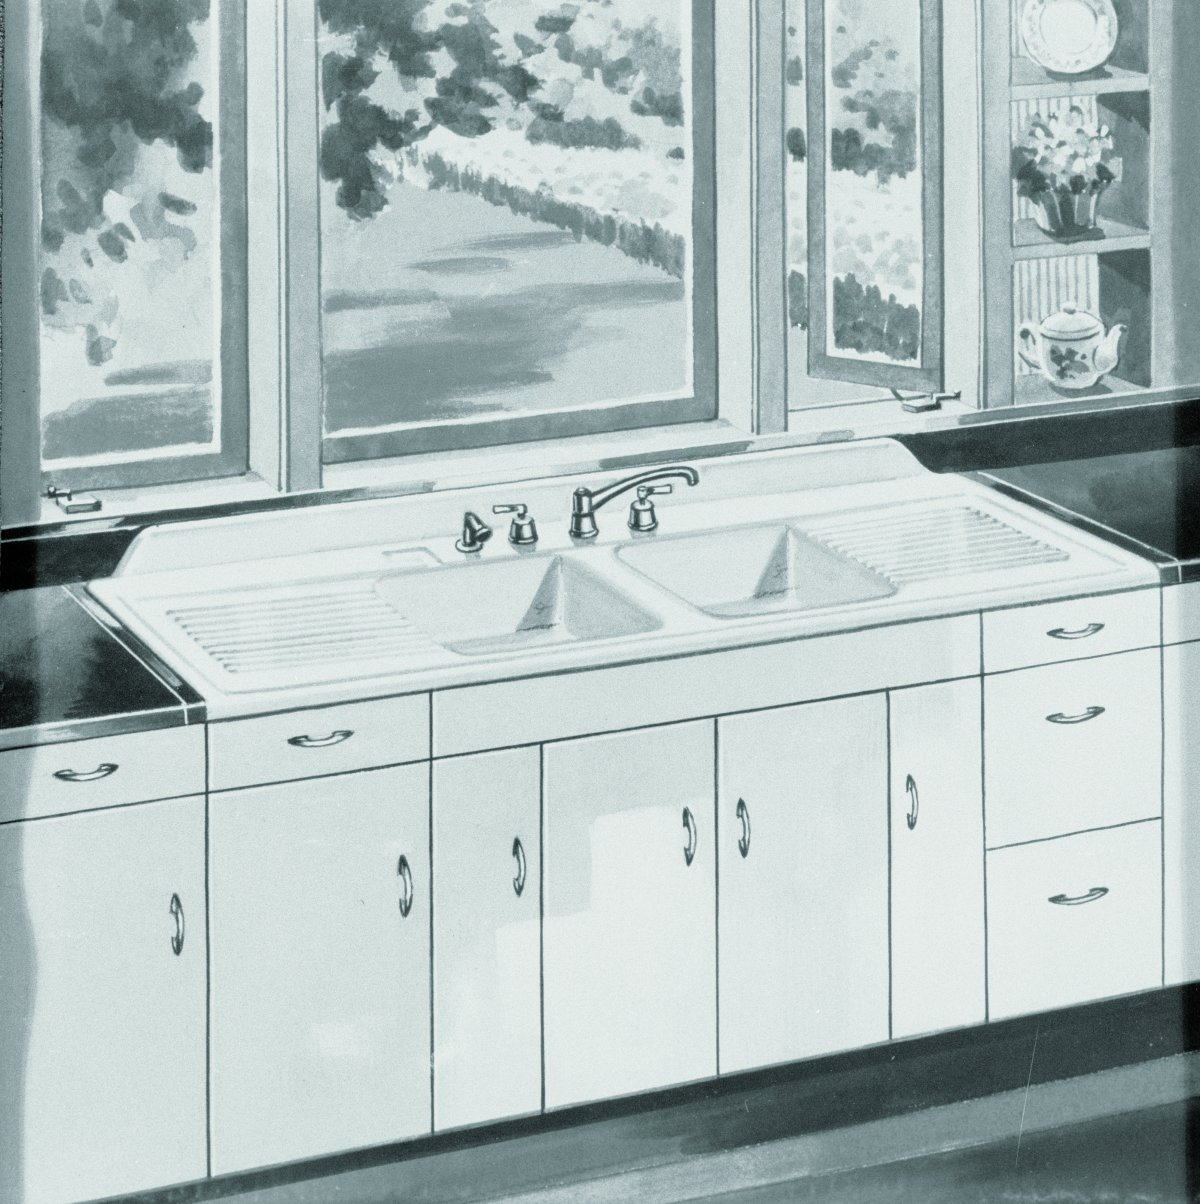 ... Kohler kitchens ? and an important kitchen sinks still offered today